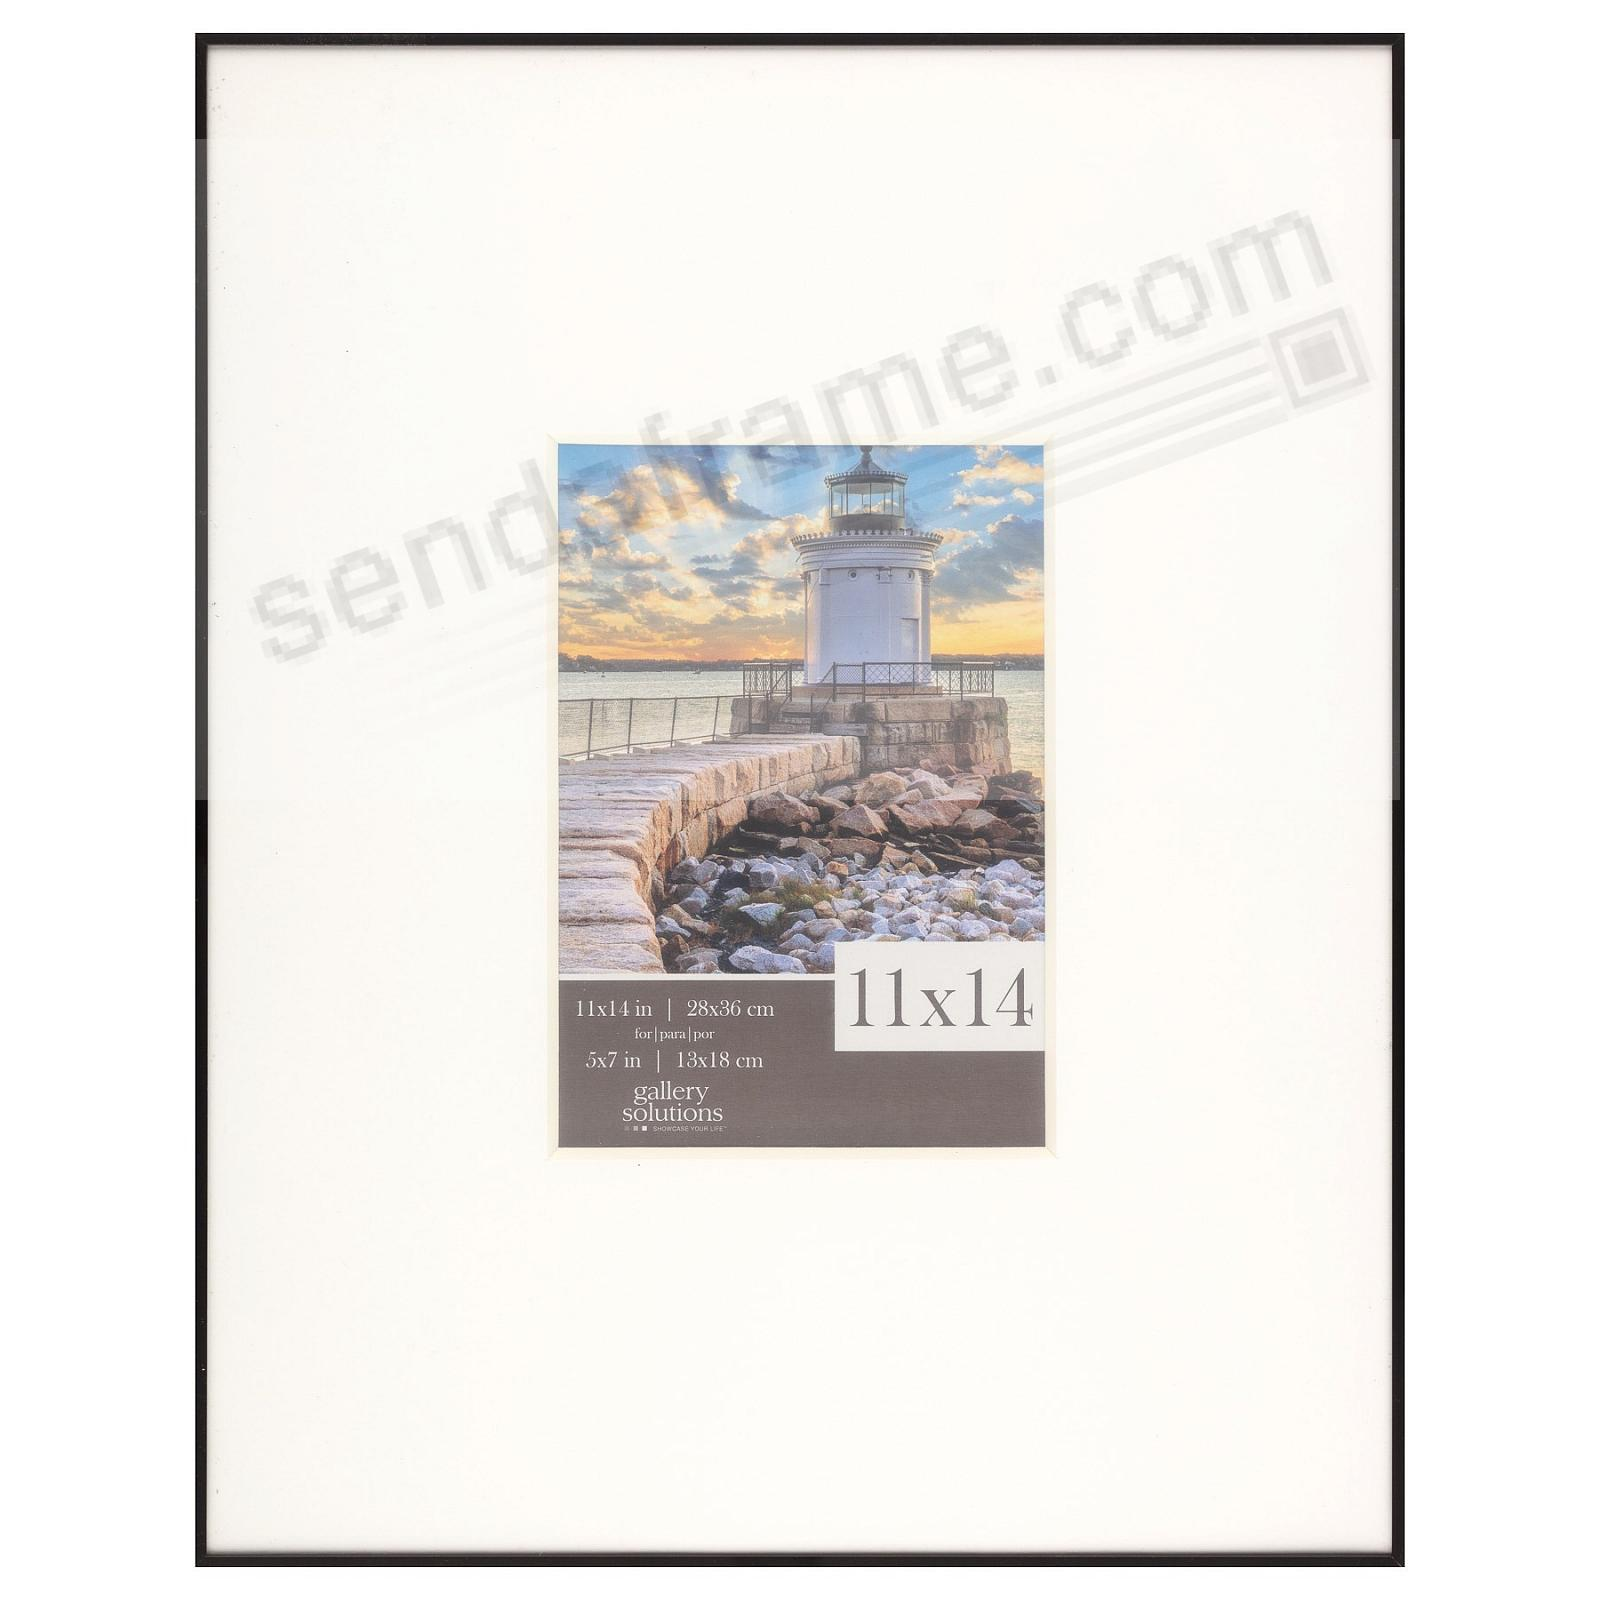 IMAGE series matted Black metallic frame 11x14/5x7 by Gallery Solutions®